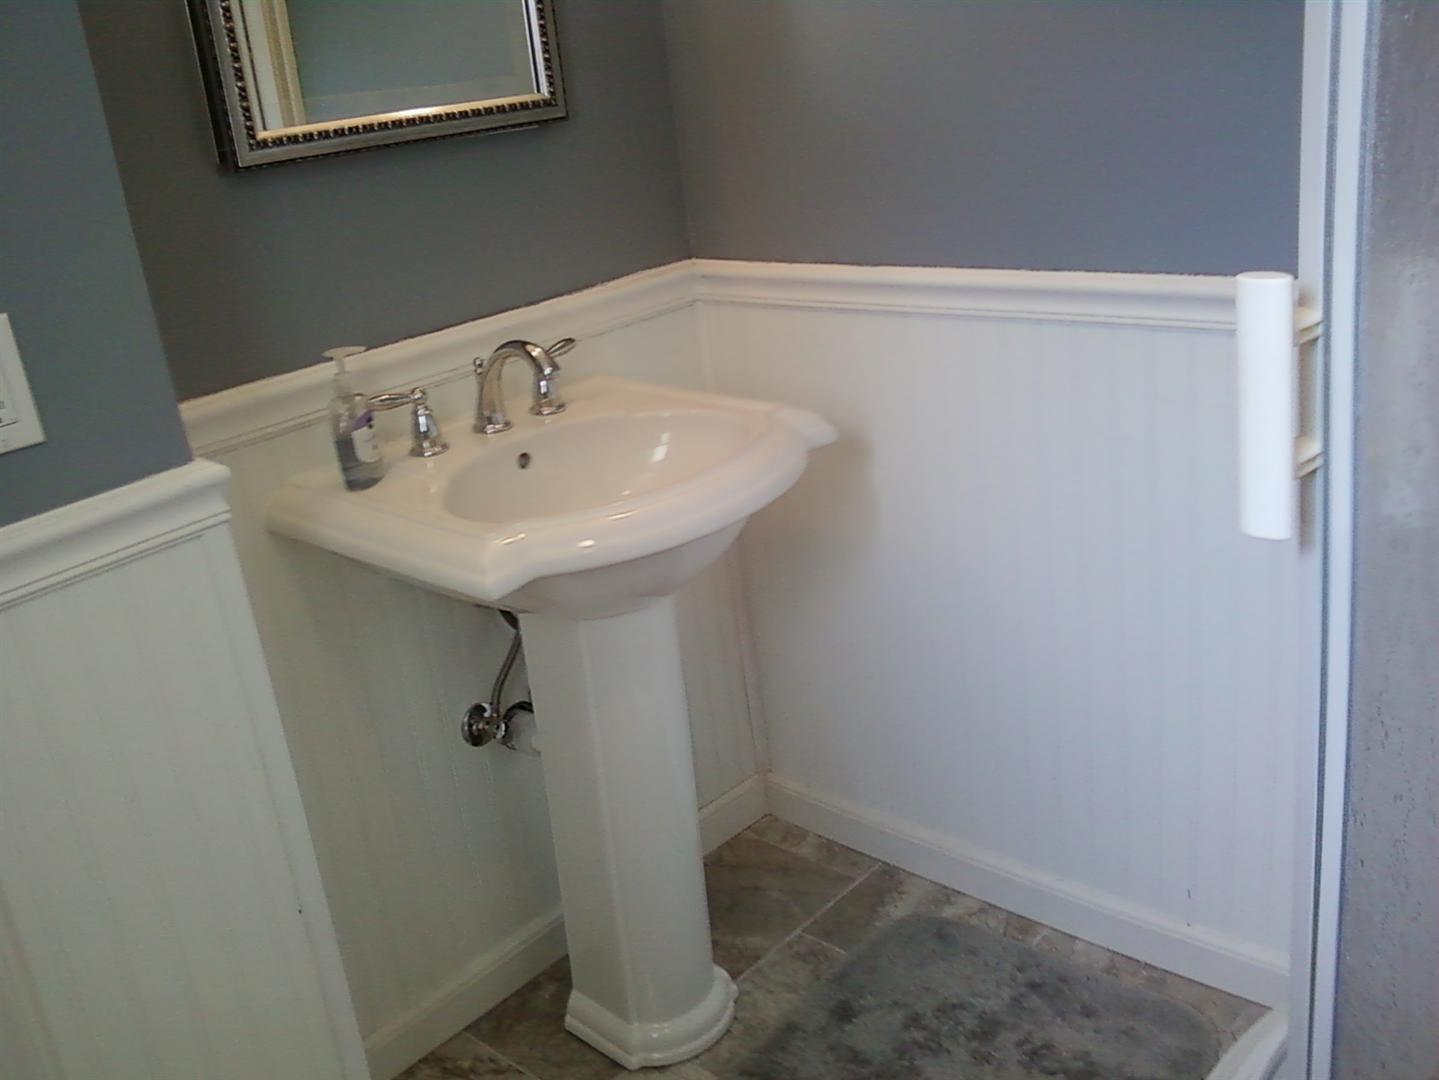 new pedestal sink installed in bathroom during renovation in westfield